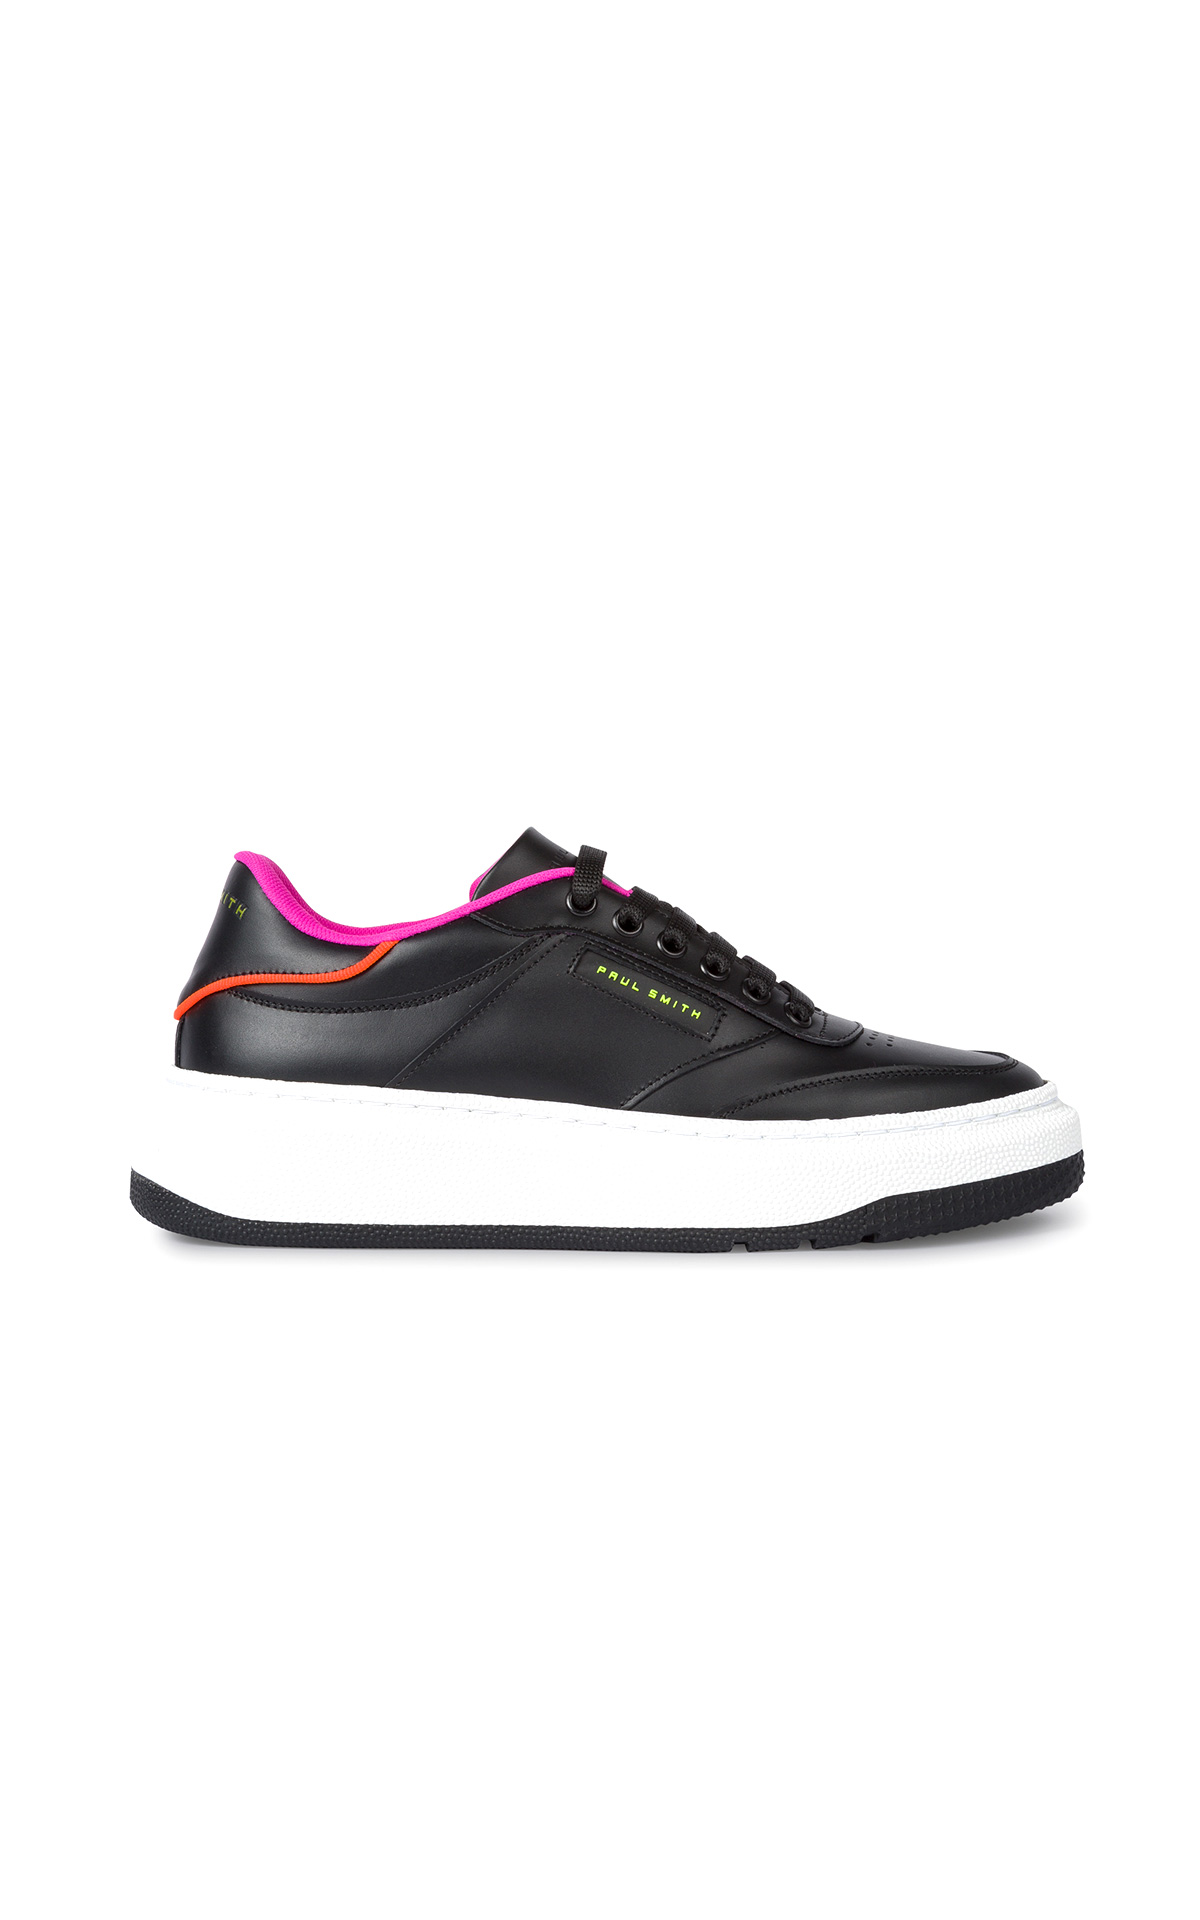 La Vallée Village Paul Smith Hackney sneakers